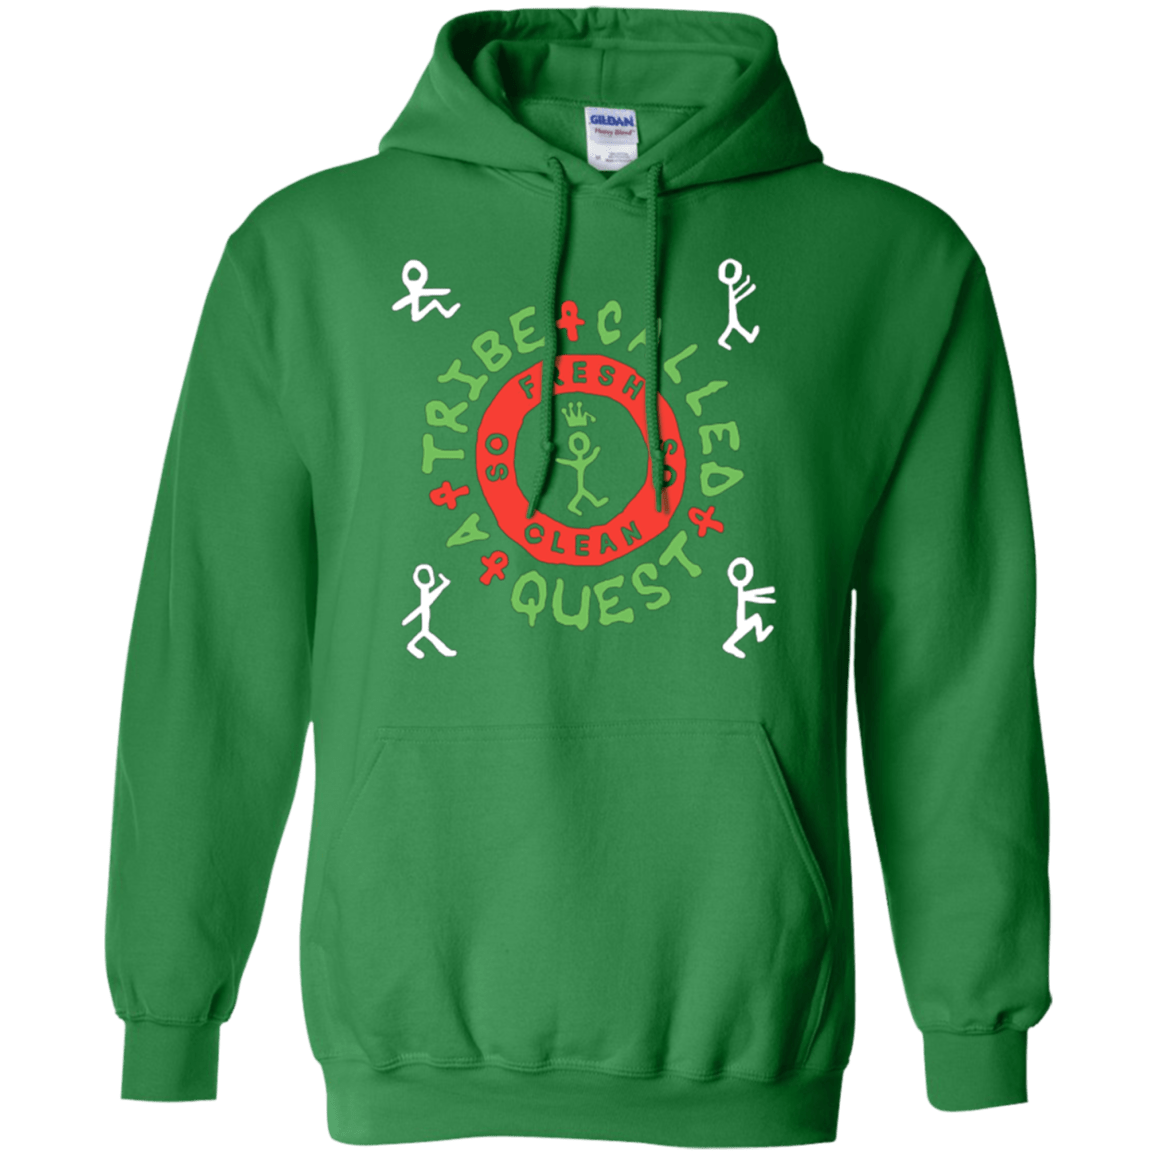 Hoodie clipart pullover hoodie. A tribe called quest